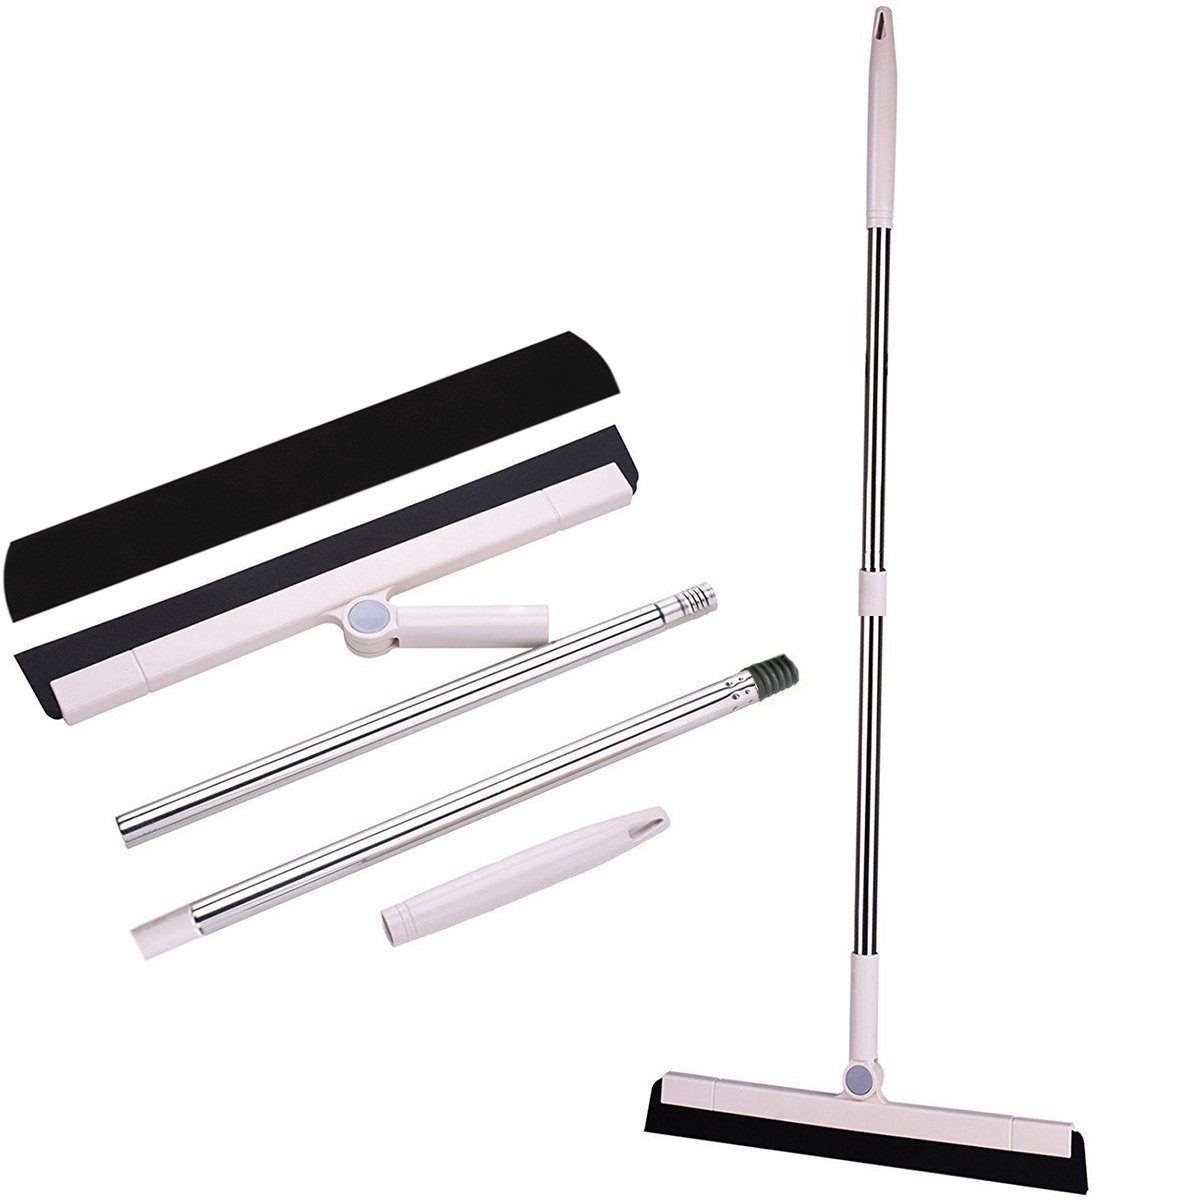 MEIBEI Floor Squeegee with Long Handle -39.4'', Multi-Surface Natural Foam Floor Broom with Squeegee, Water and Pet Hair Removal, Window Cleaning, One More Squeegee Blade for Free